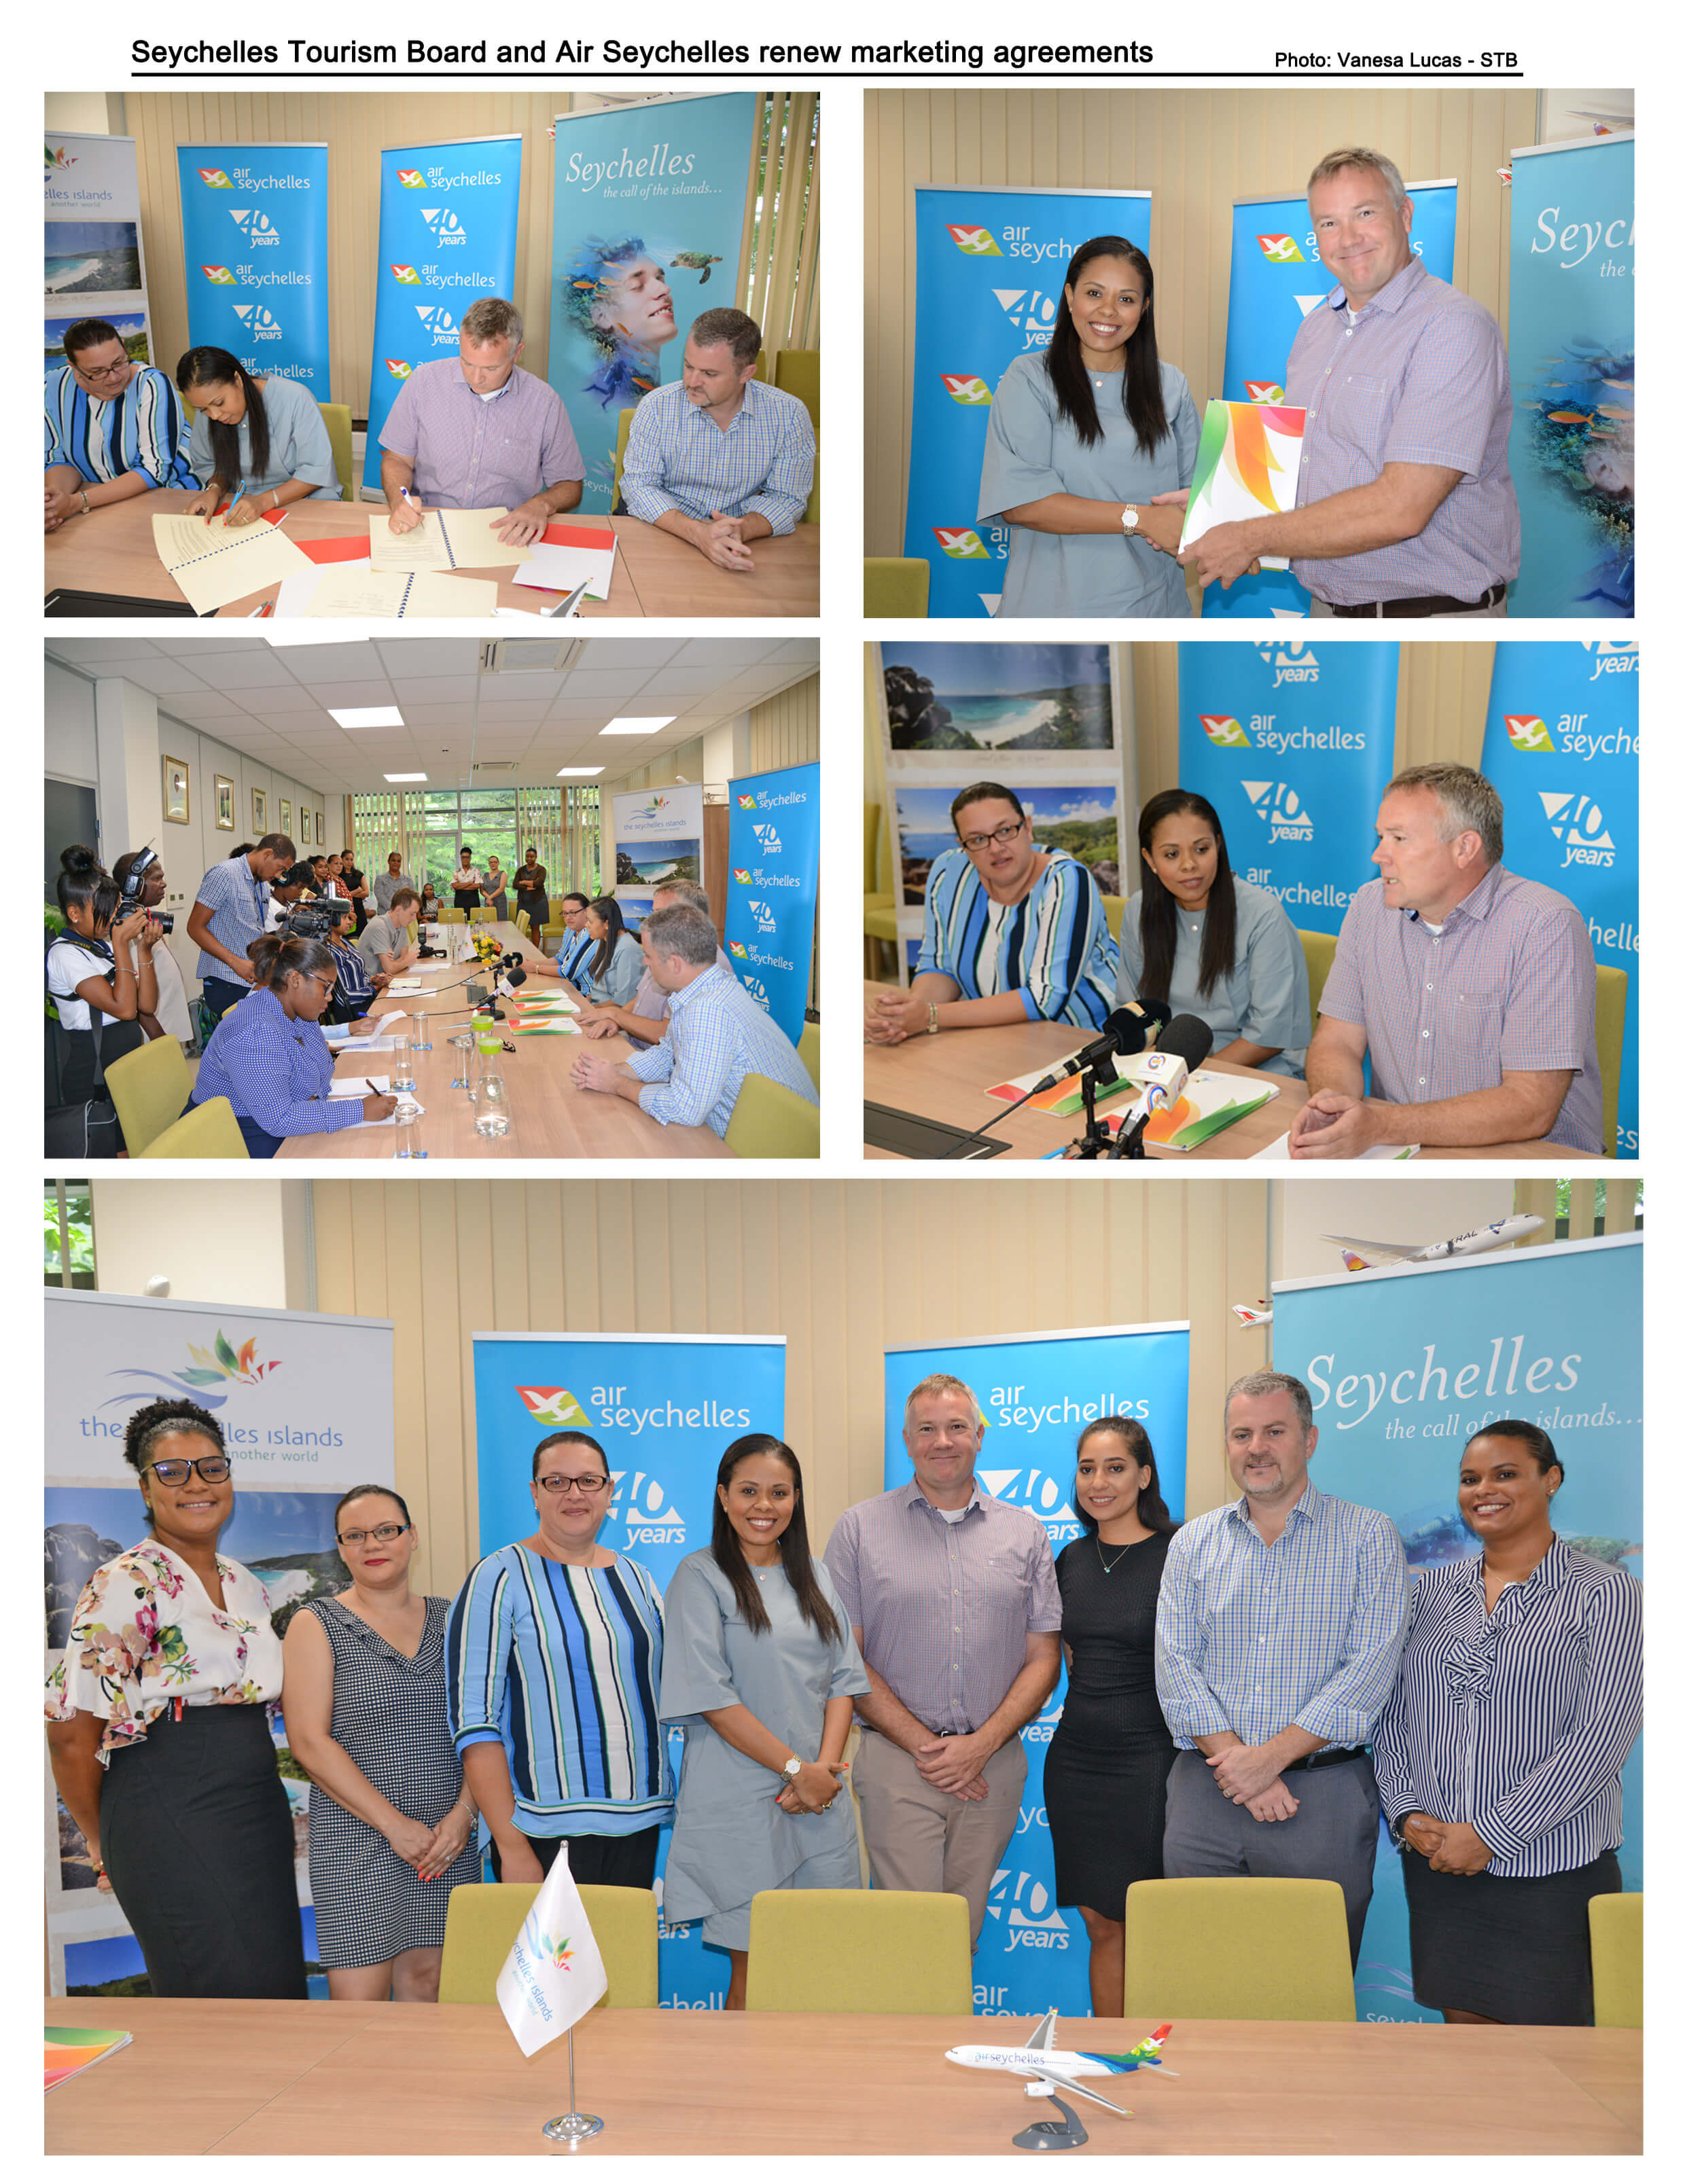 seychelles-tourism-board-and-air-seychelles-renew-marketing-agreements